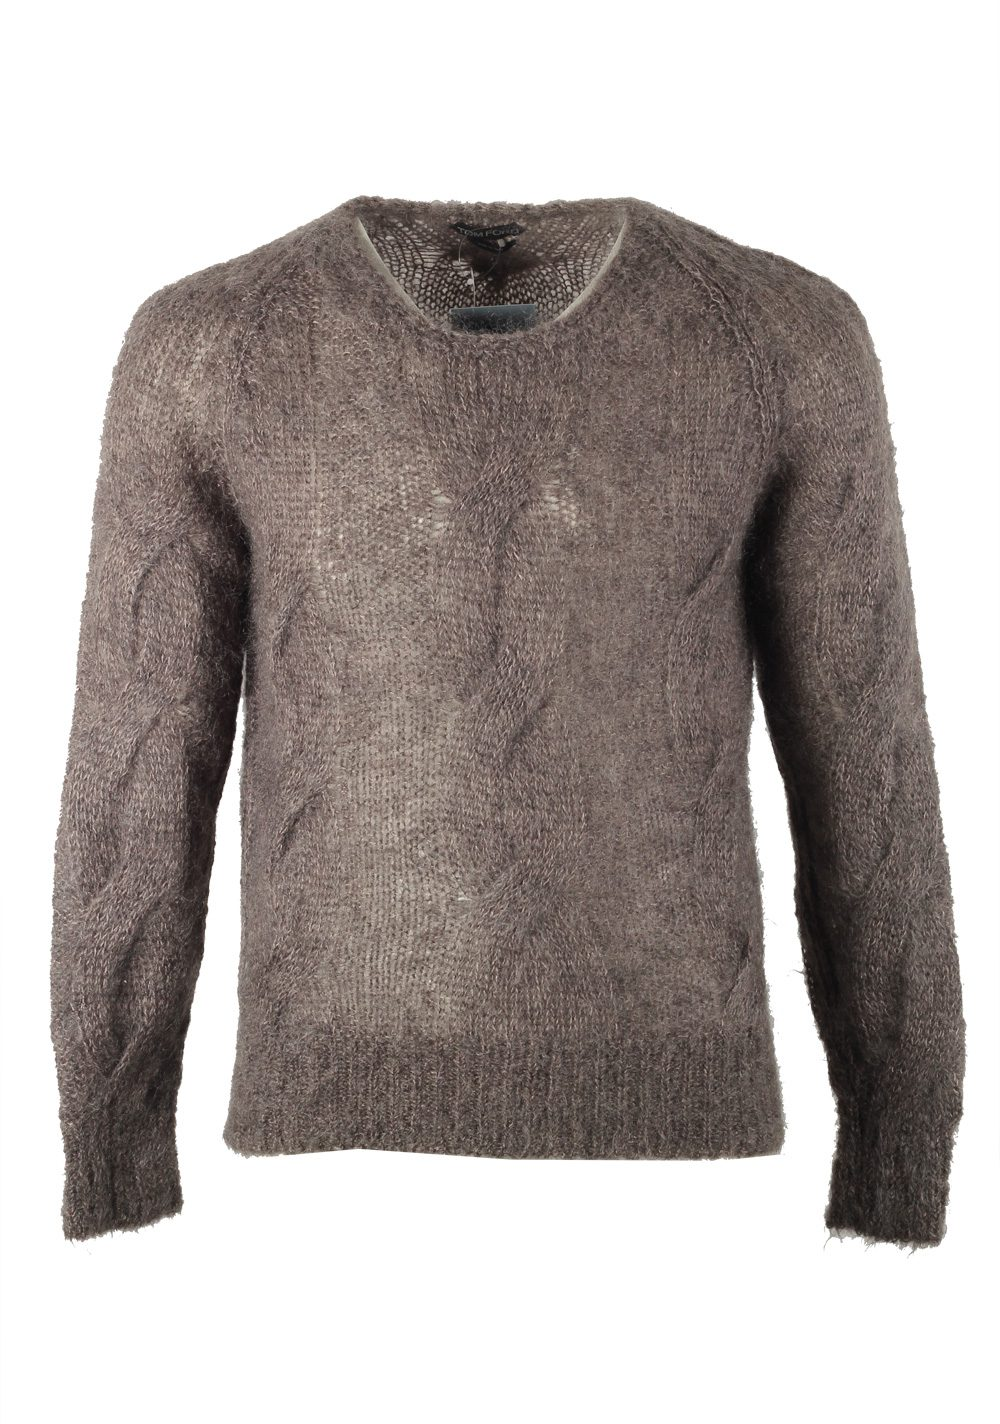 TOM FORD Brown Crew Neck Sweater Size 50 / 40R U.S. In Mohair Blend | Costume Limité